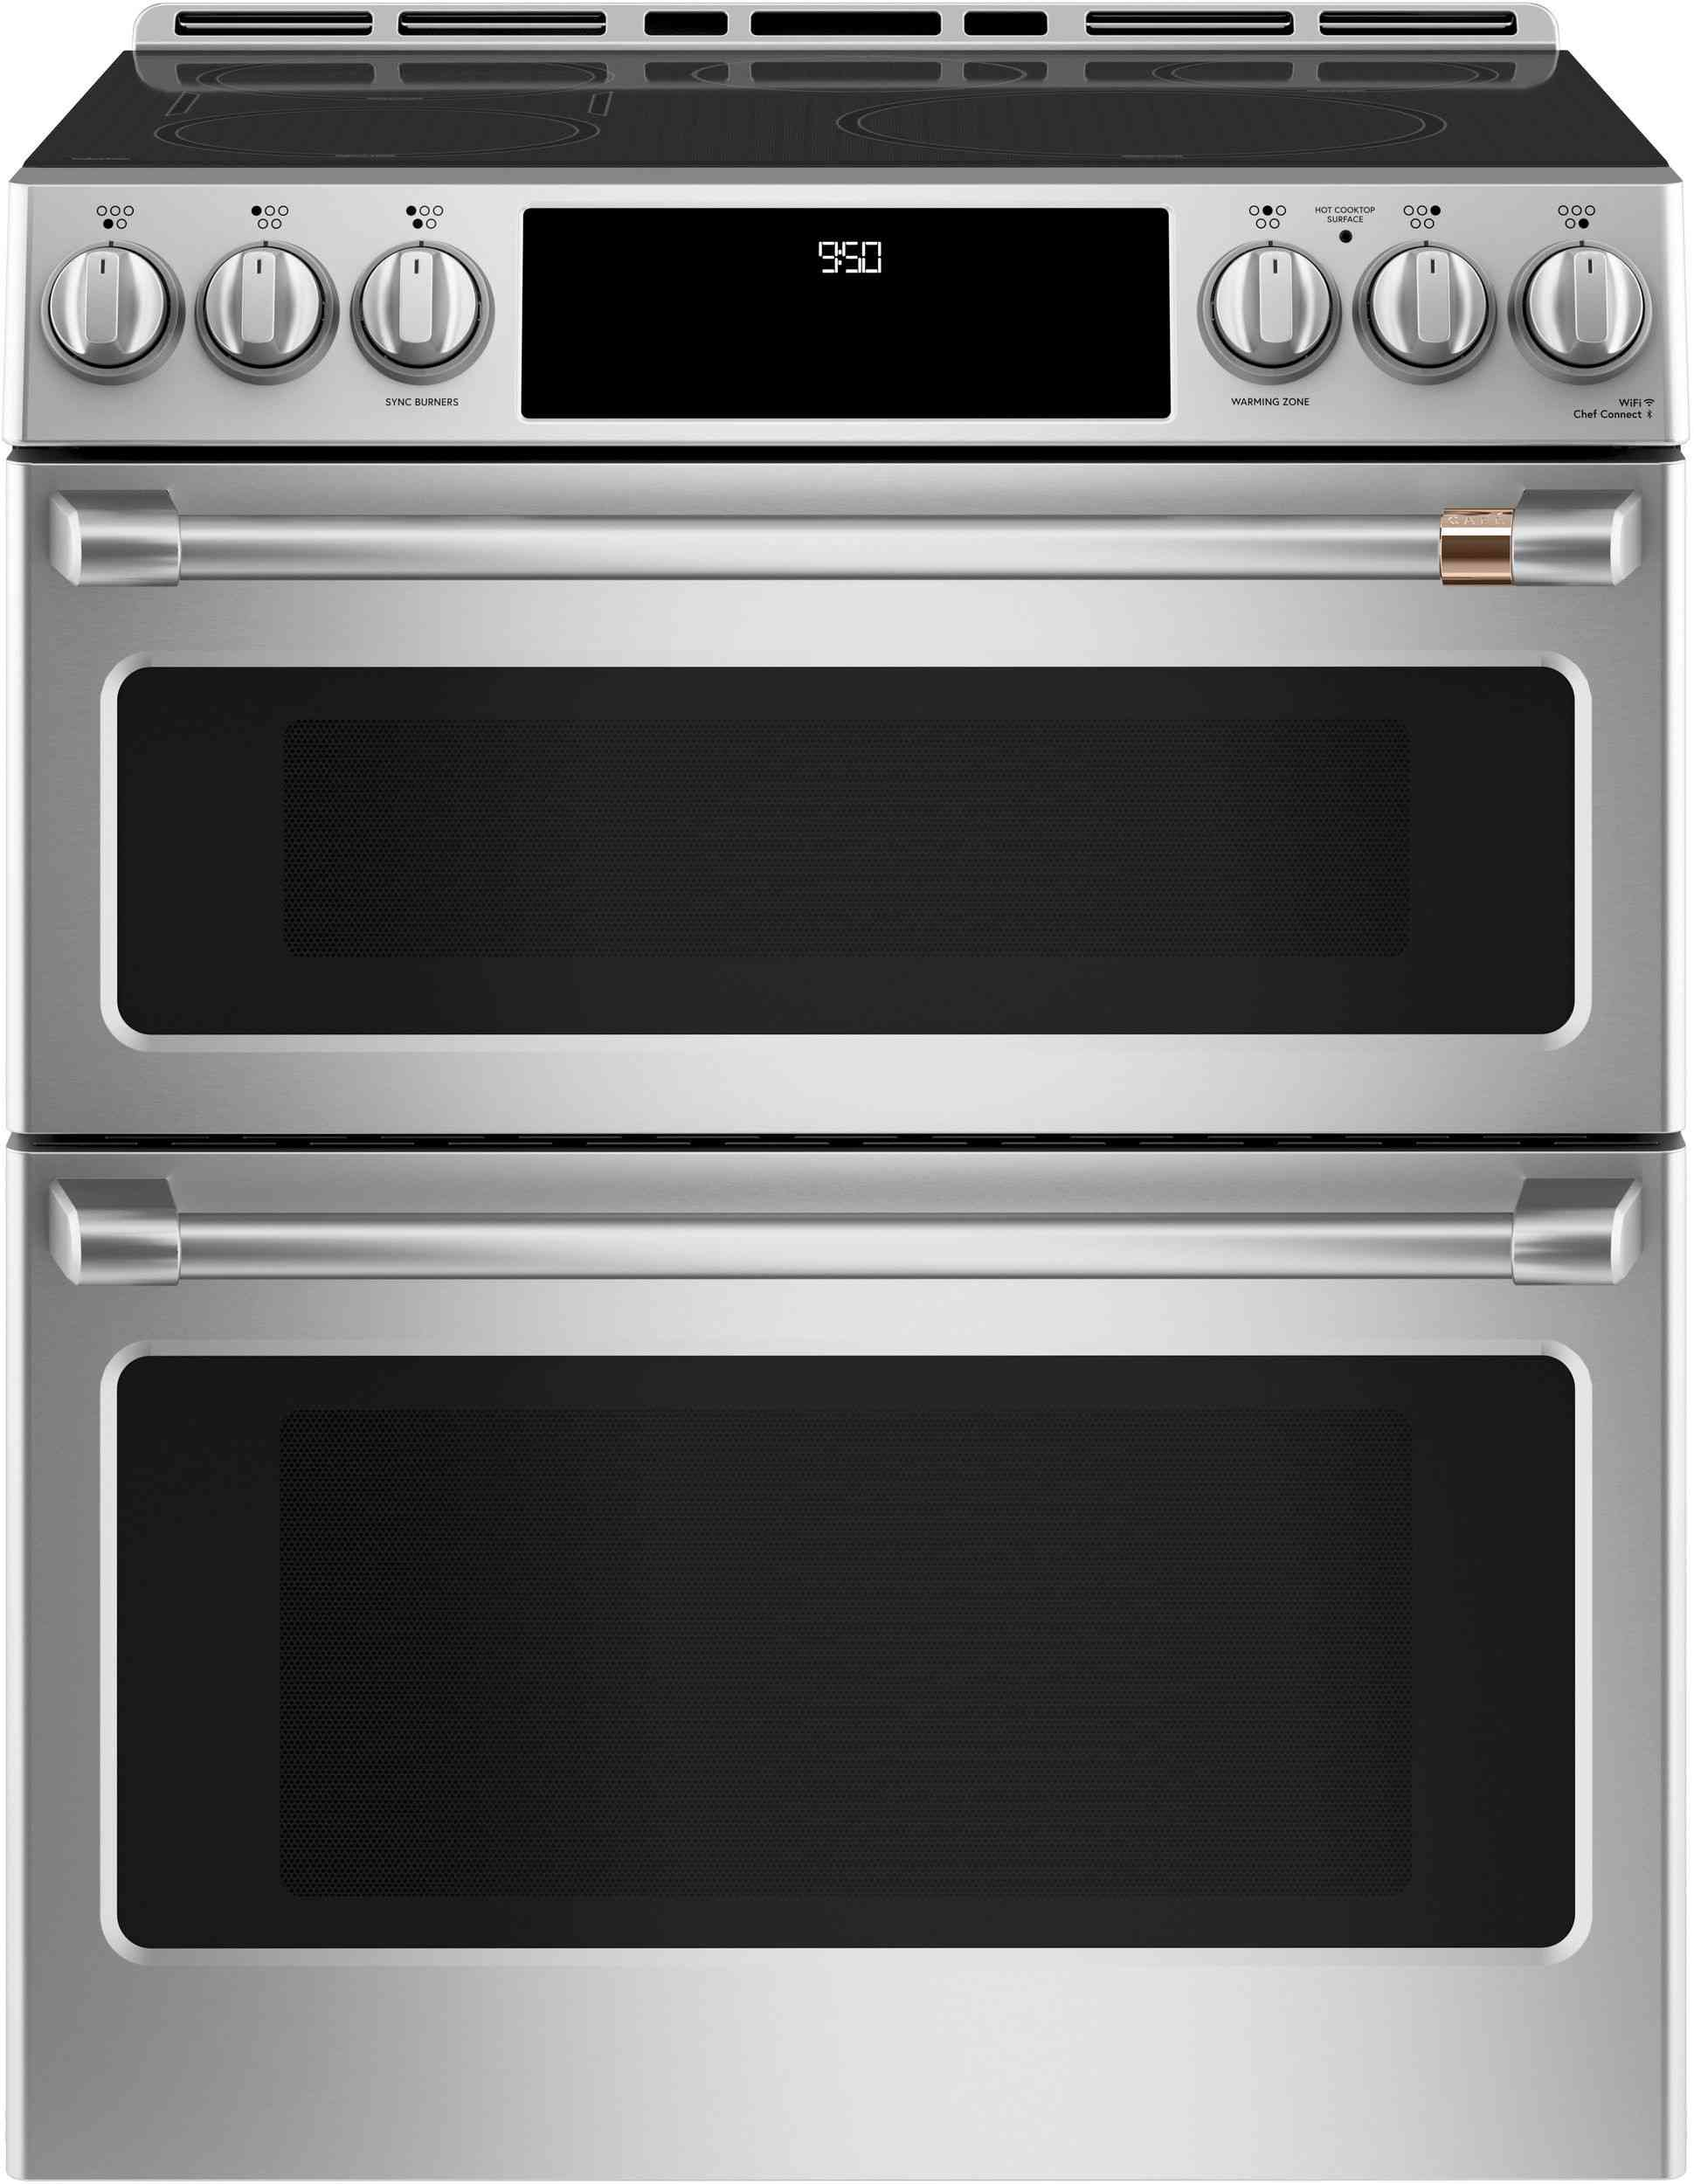 The Cafe 6.7 cu. ft. Smart Slide-In Double Oven Induction Range has a self-cleaning feature and specialty lower oven settings.